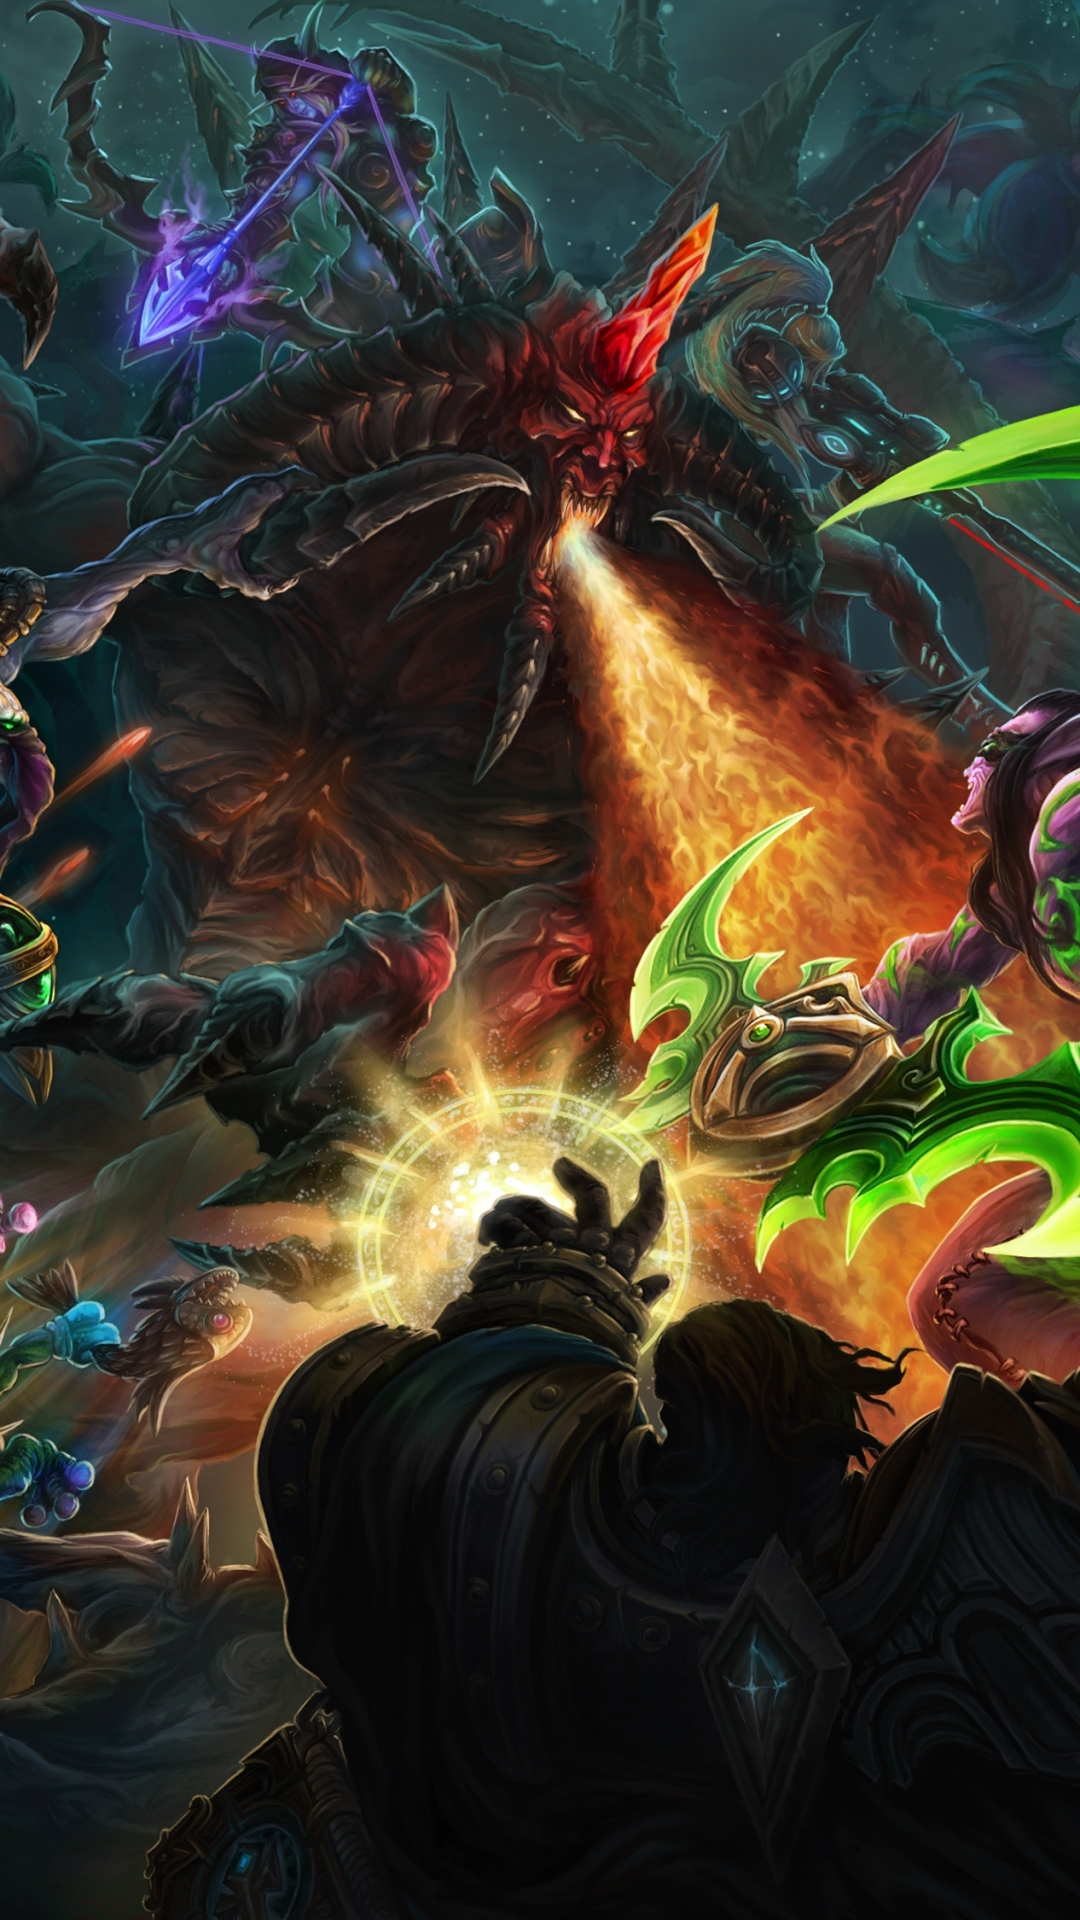 Video Game Heroes Of The Storm 1080x1920 Wallpaper Id 582584